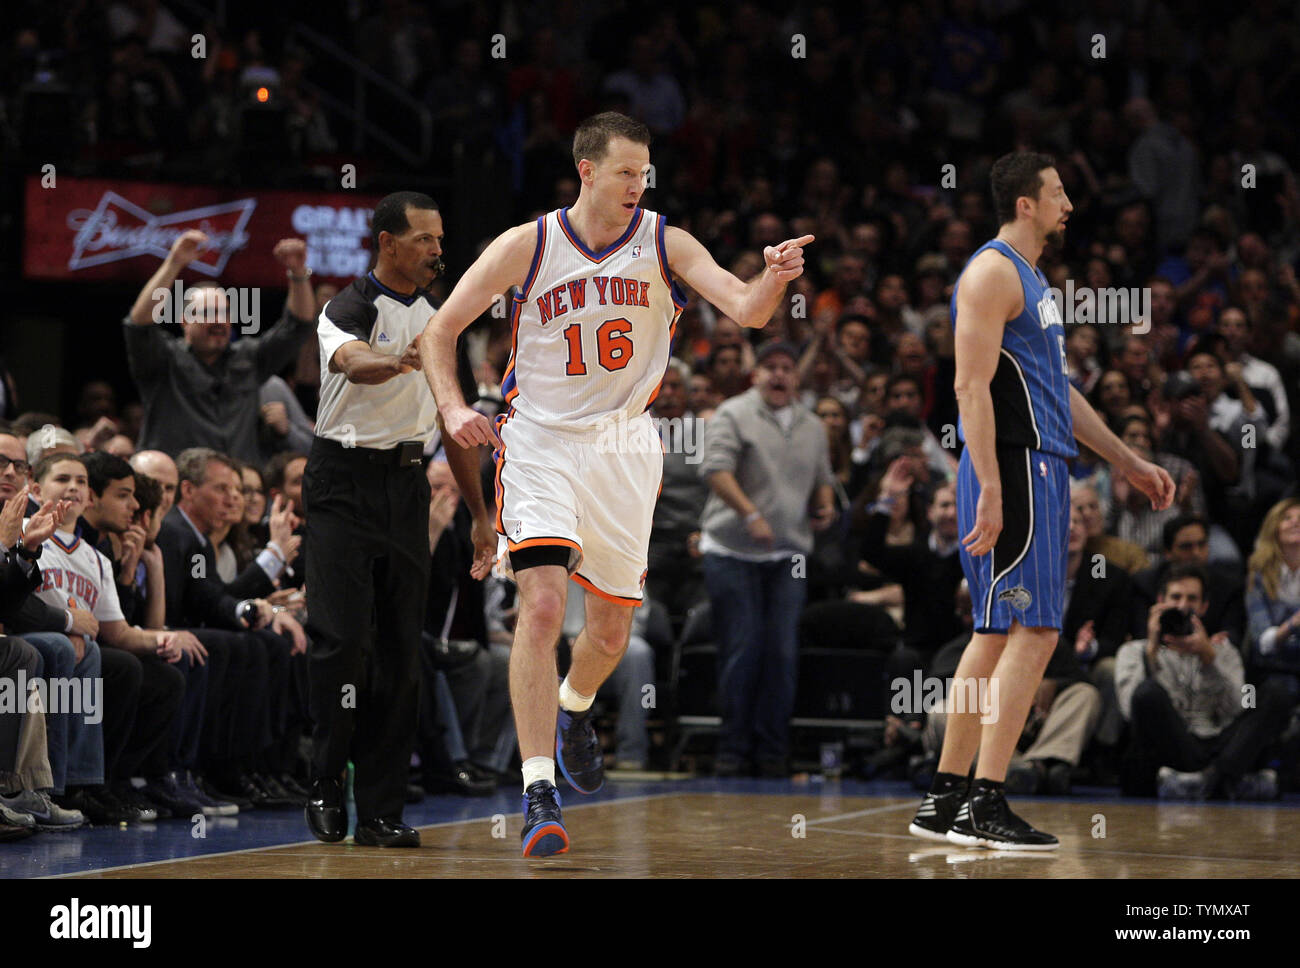 cheaper 126db bba22 New York Knicks Steve Novak reacts after hitting a 3-point ...